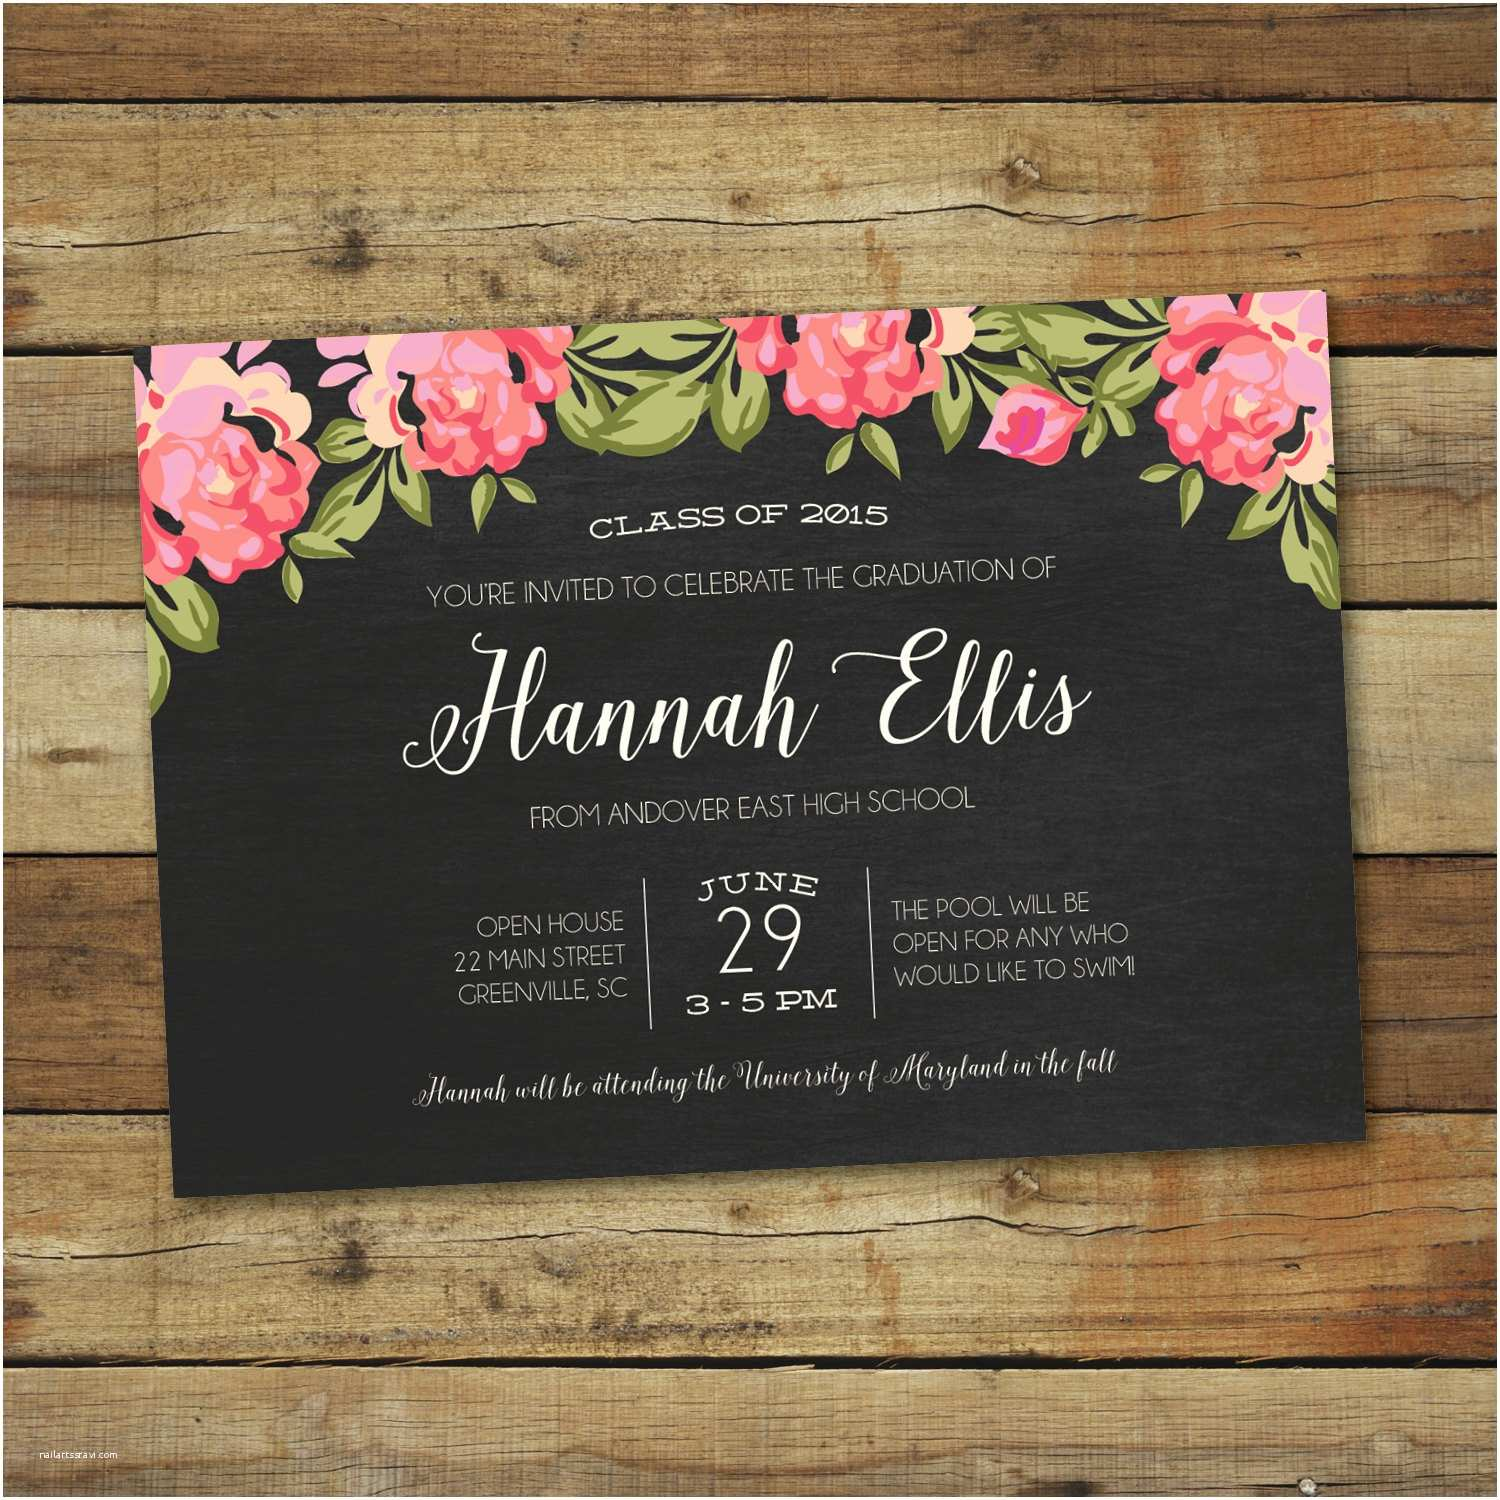 Graduation Party Invitations top 13 Graduation Invitation Cards You Must See